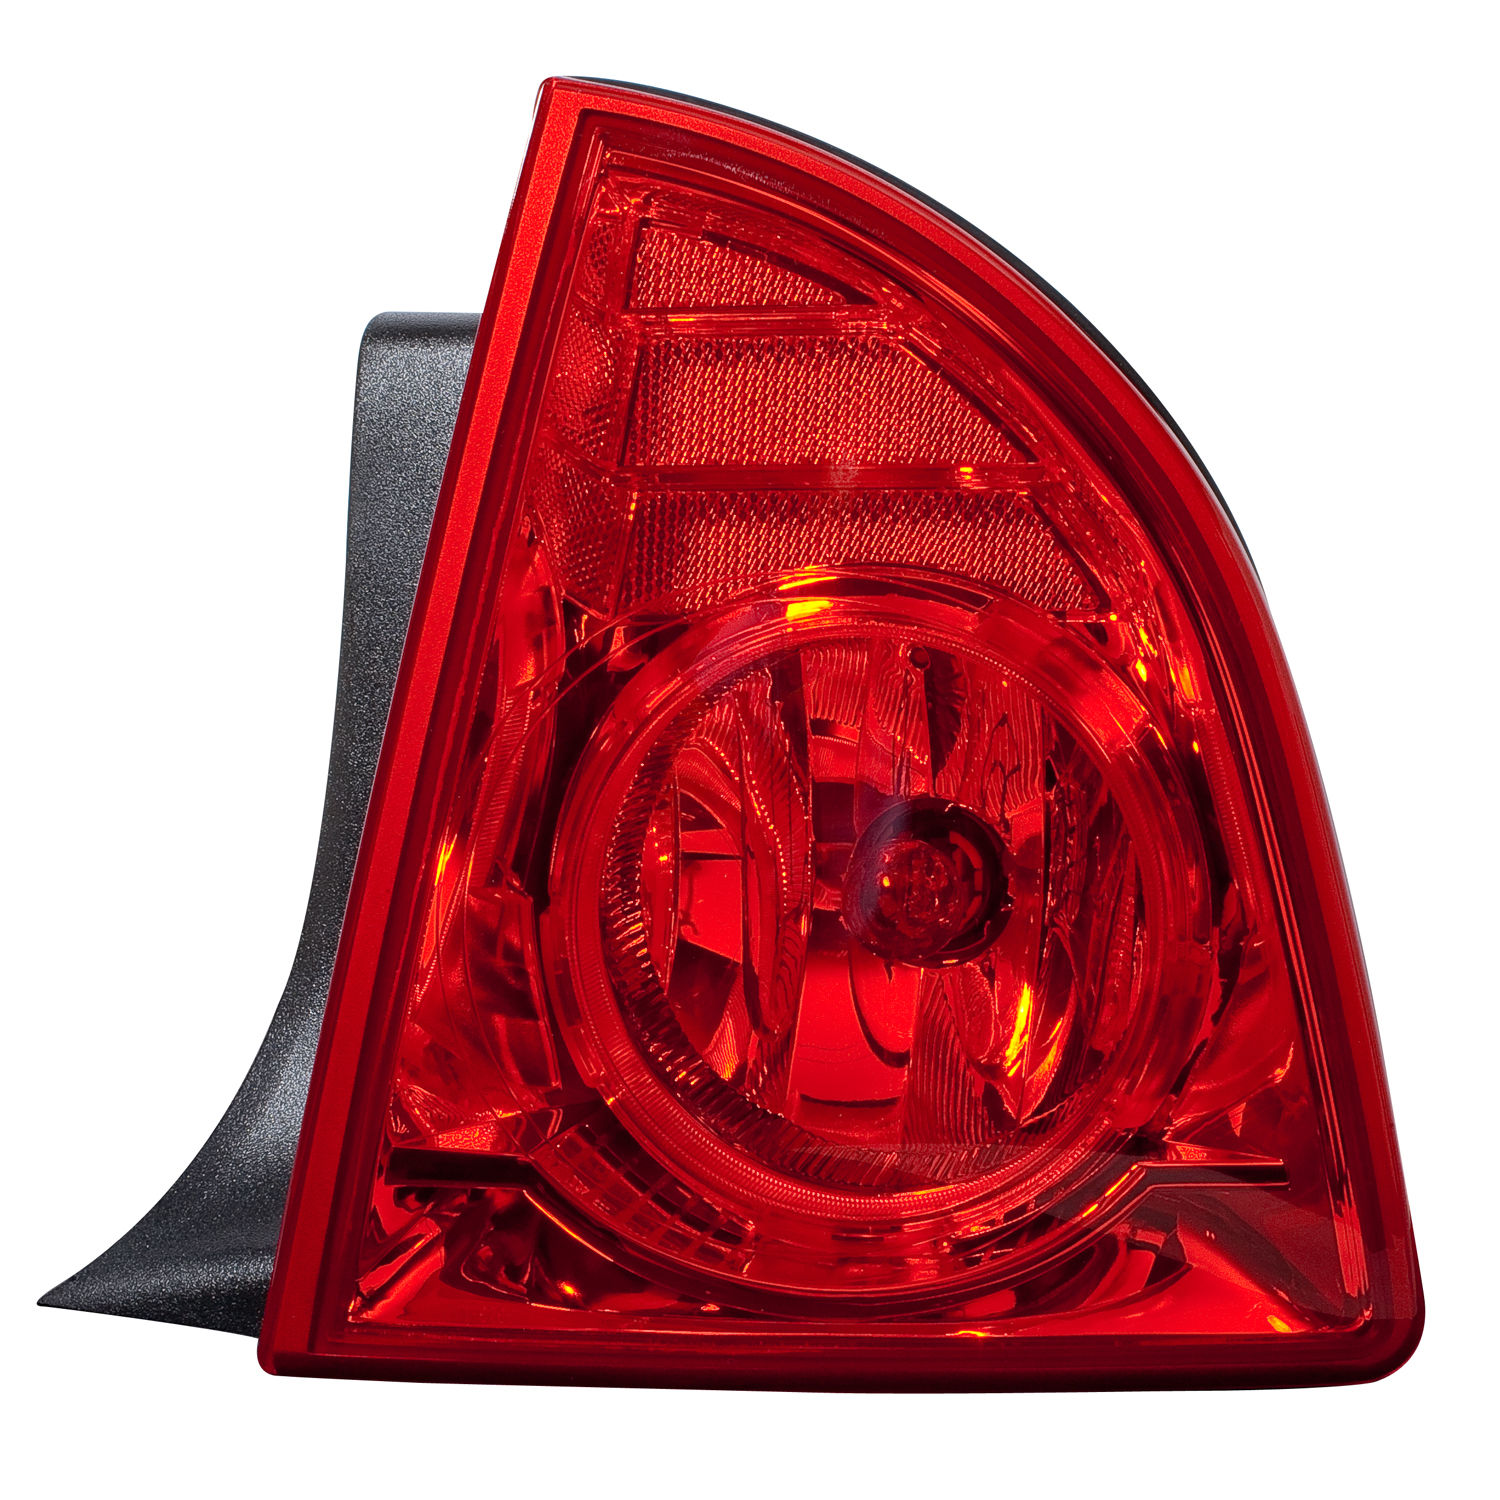 08-12 Chevy Malibu LS;LT;Hybrid Quarter Tail Light Right